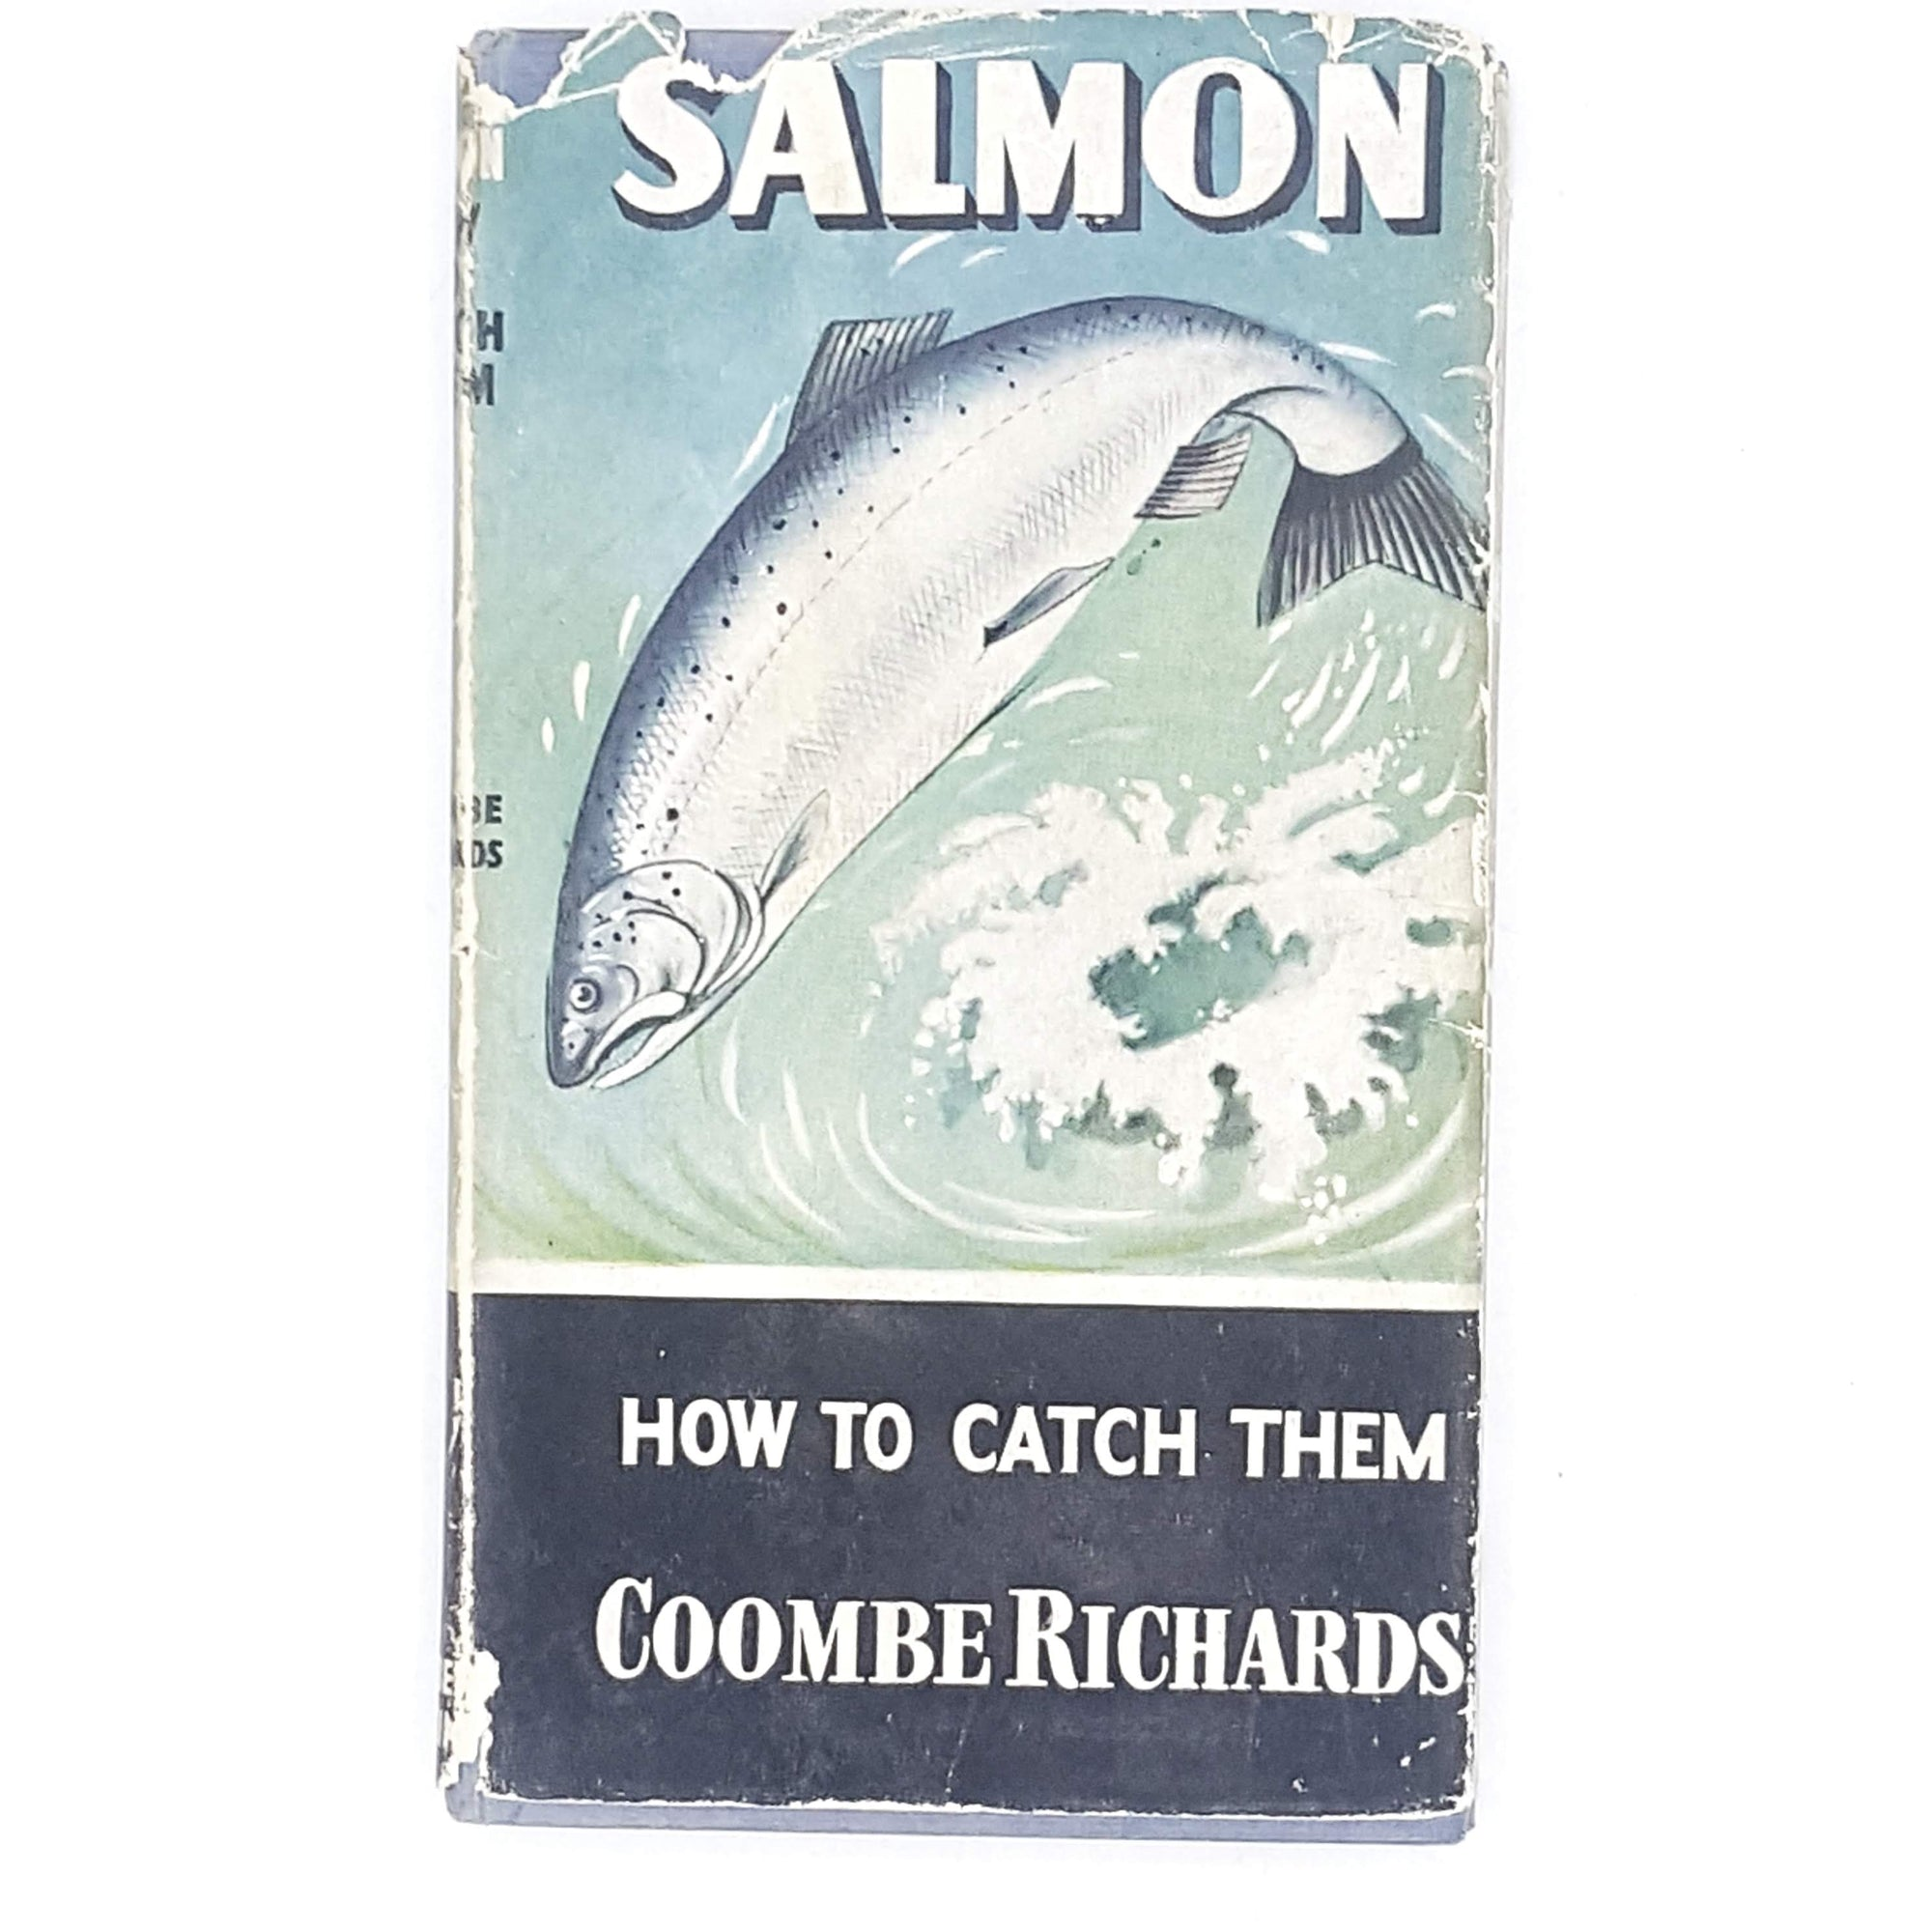 fishing-sport-salmon-vintage-book-country-house-library